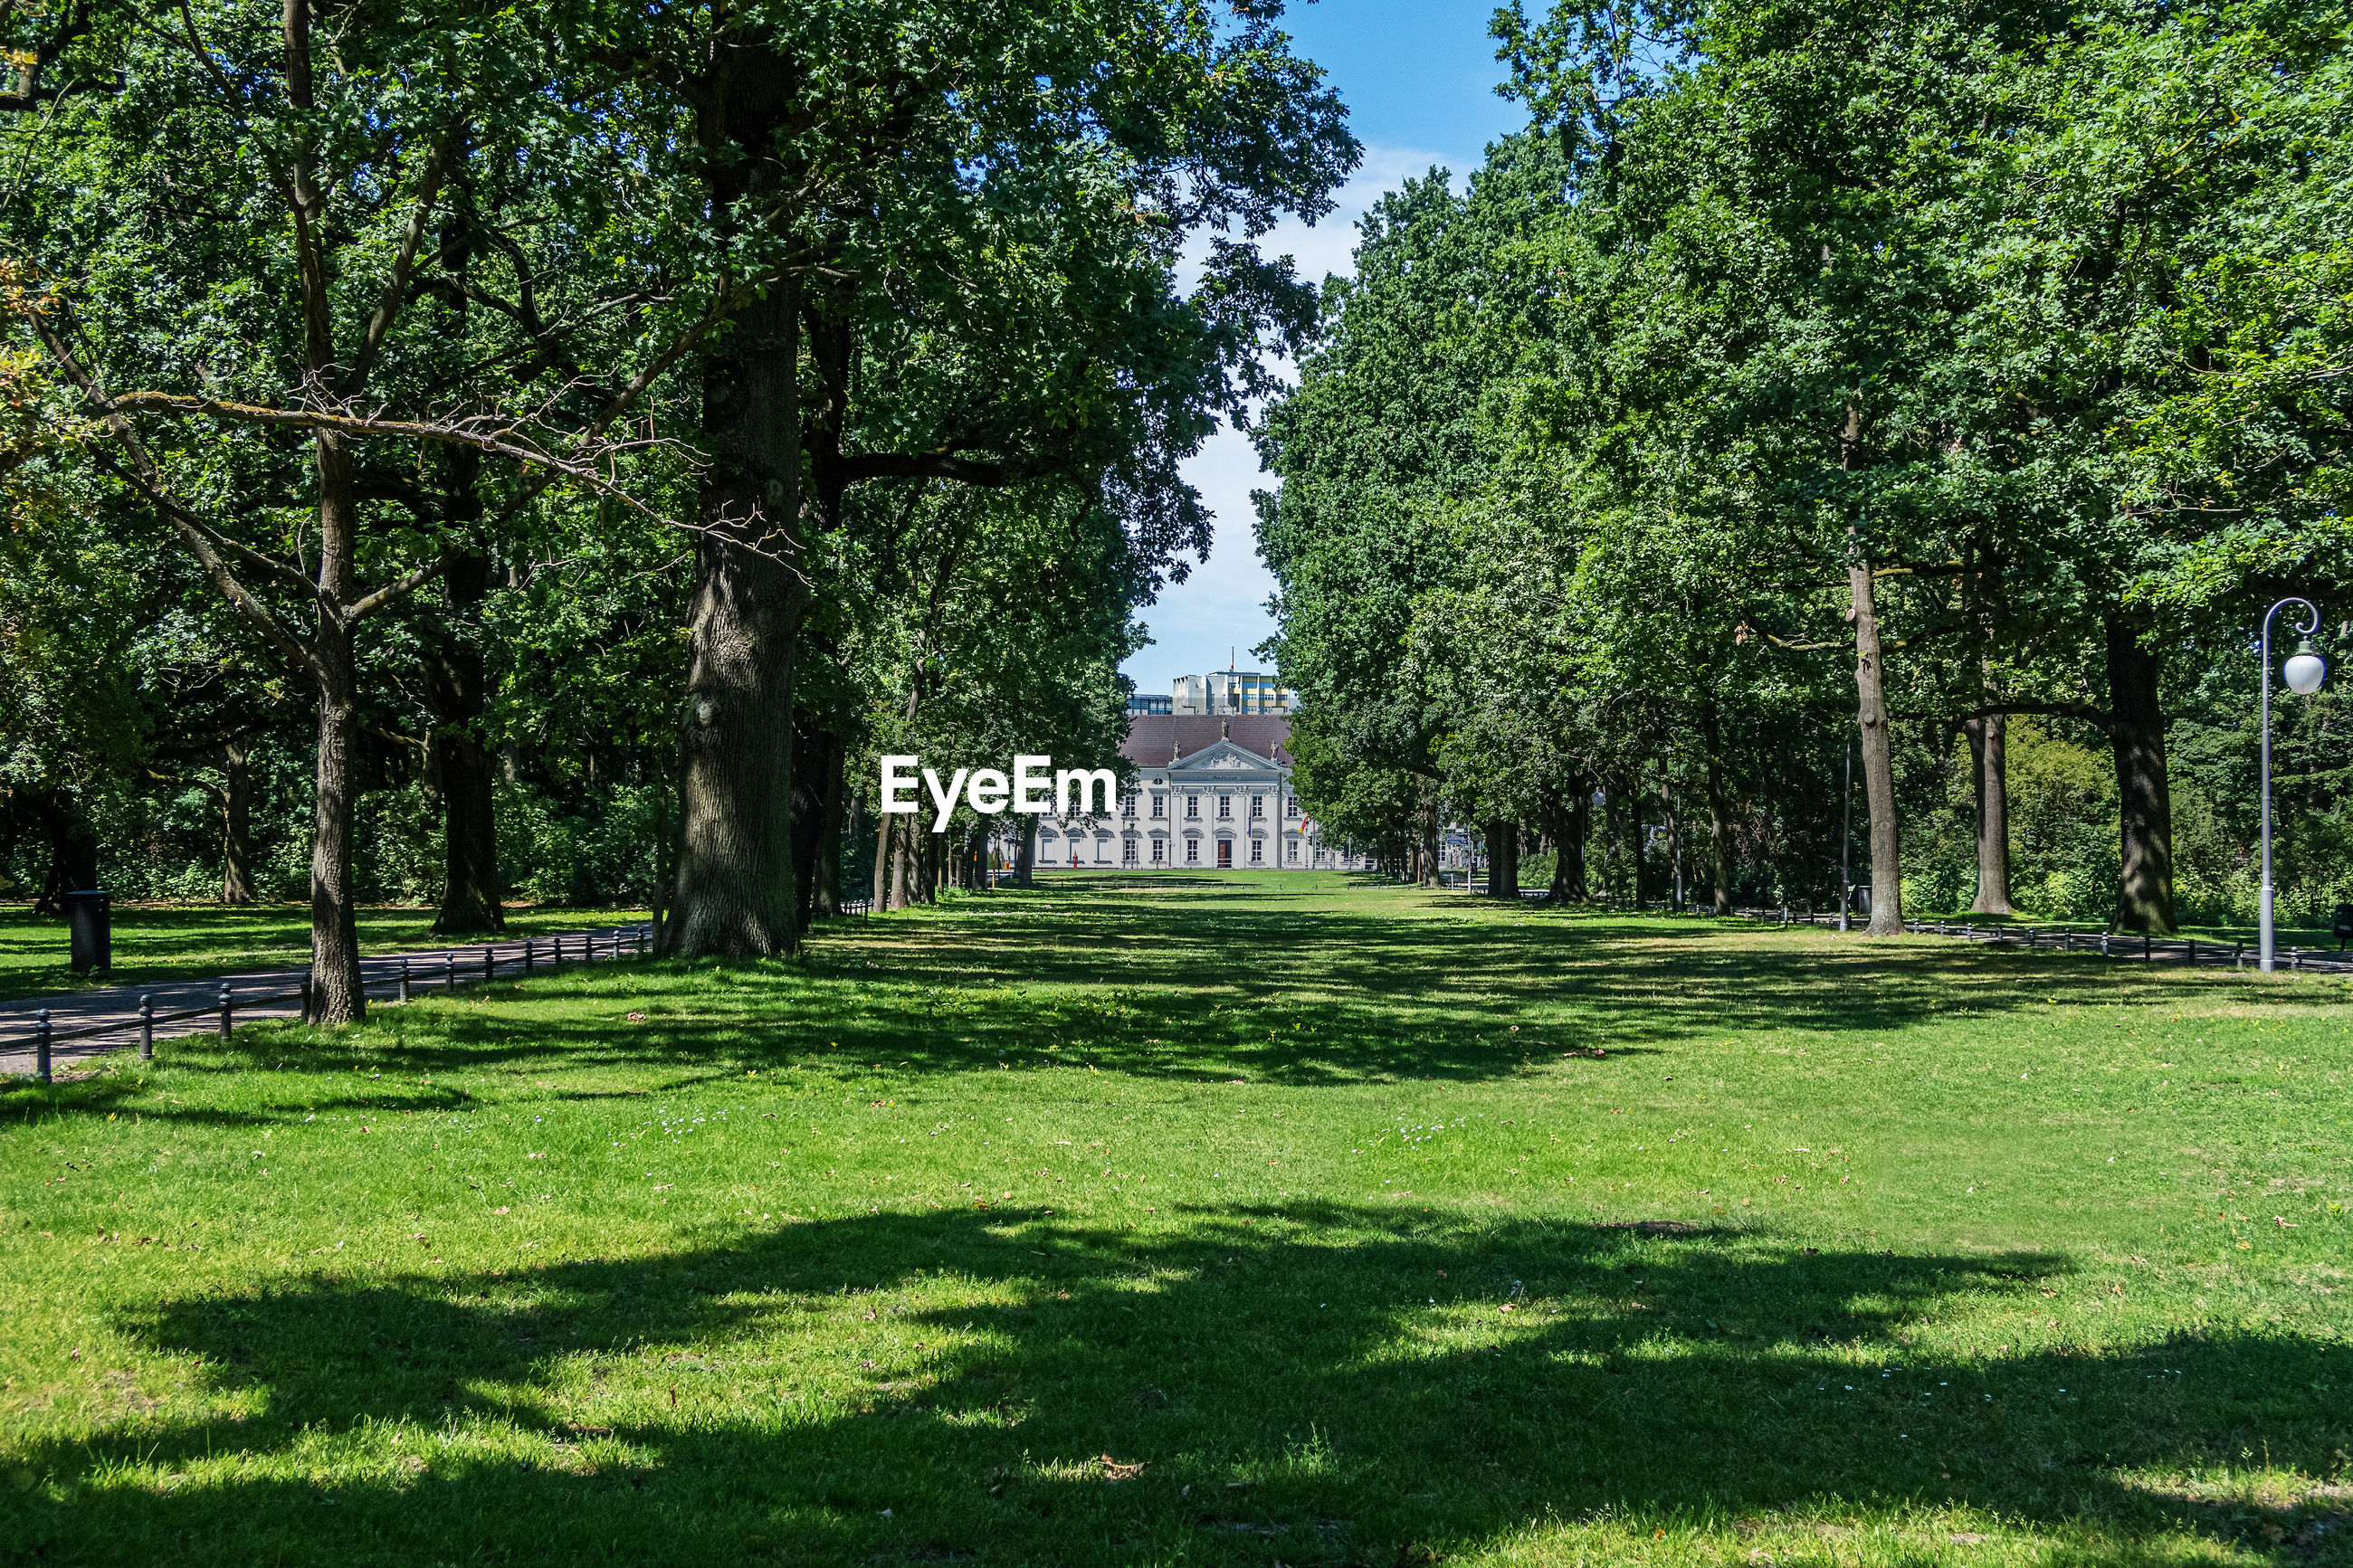 Tiergarten park in berlin, germany with bellevue palace in distance on sunny day